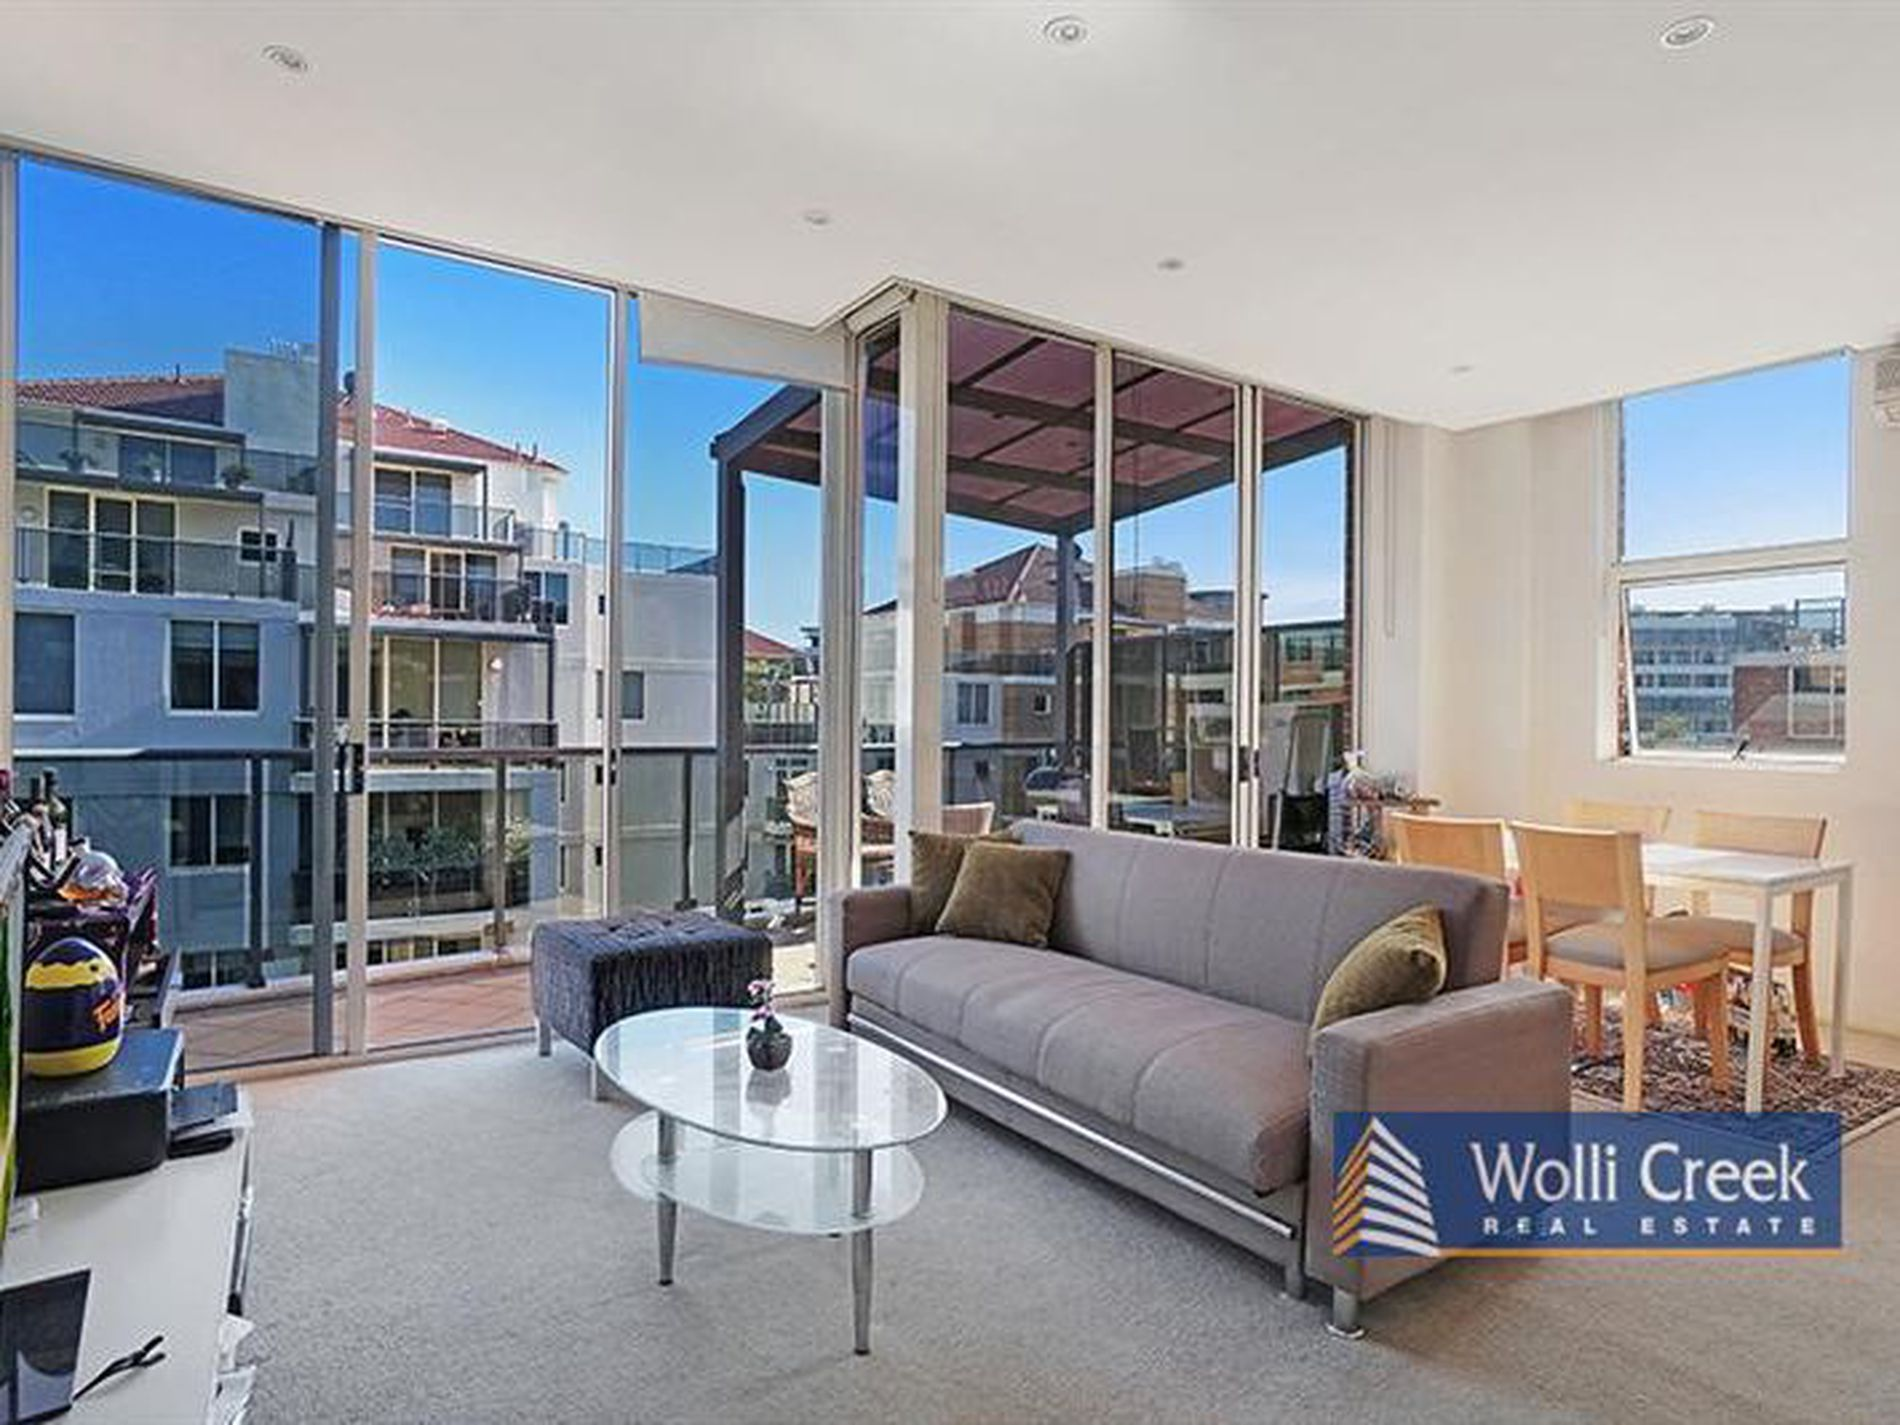 87 / 97 Bonar Street, Wolli Creek